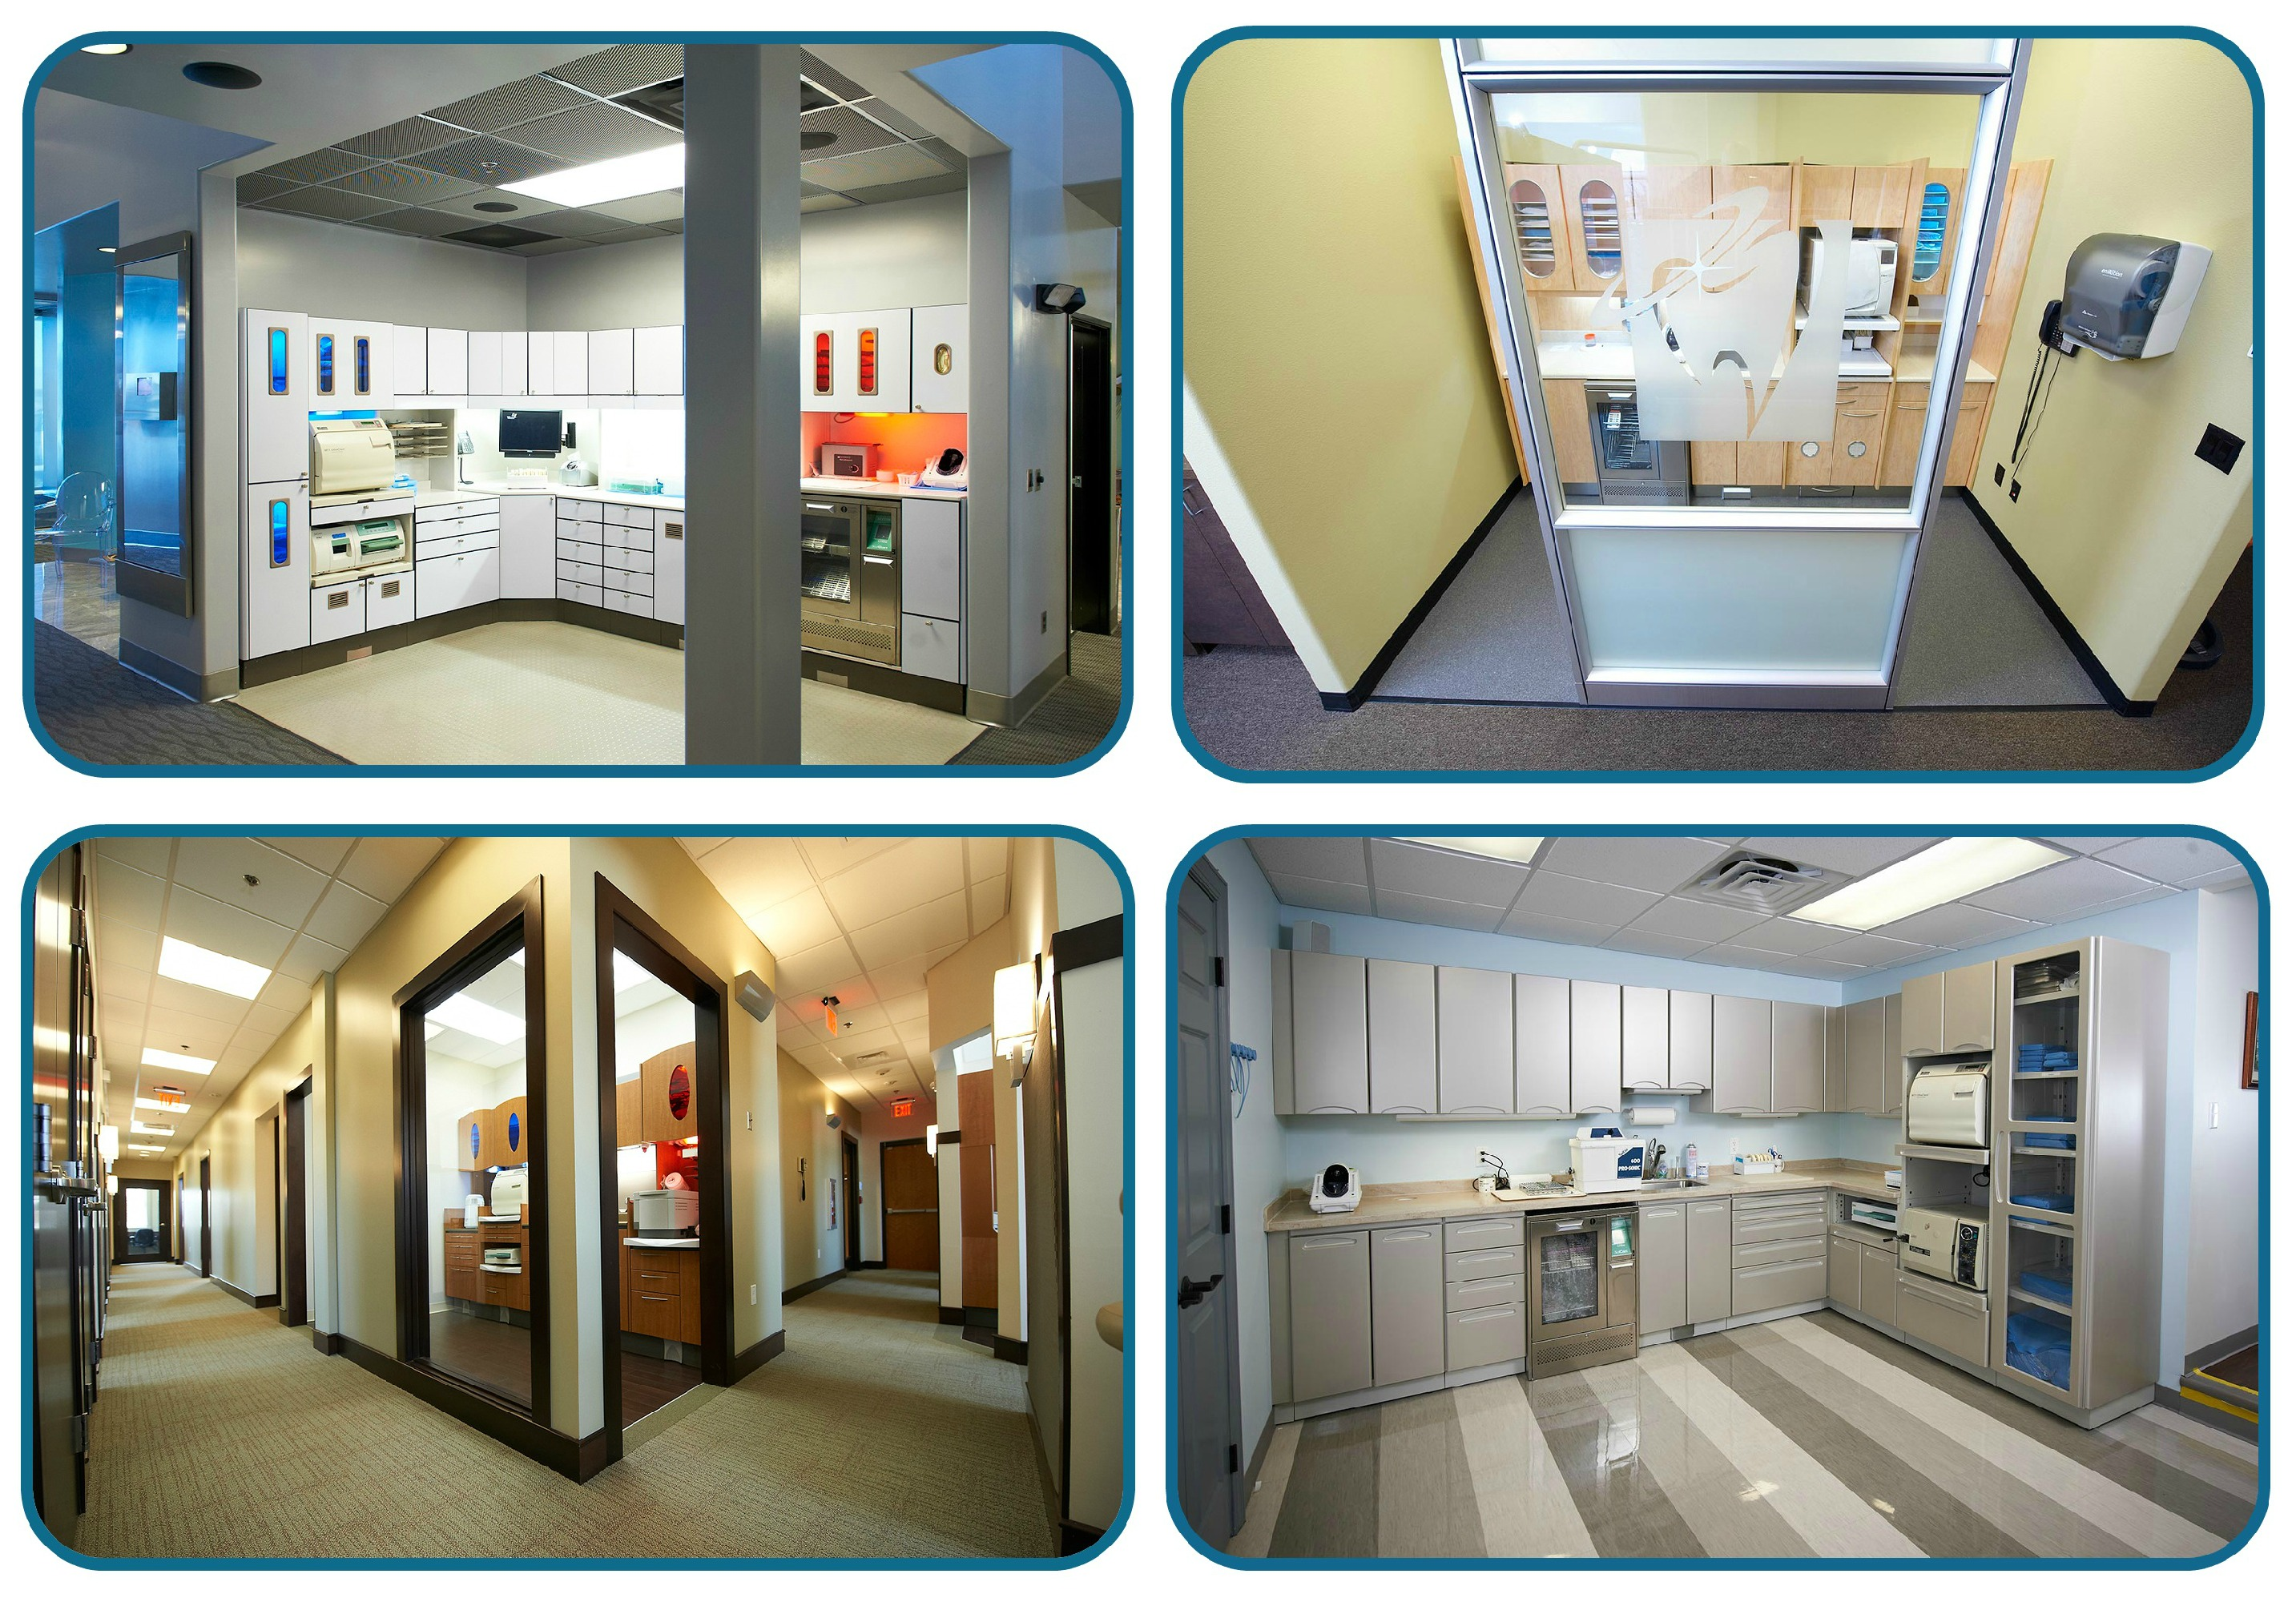 4 ideas for beautiful sterilization center floorplans